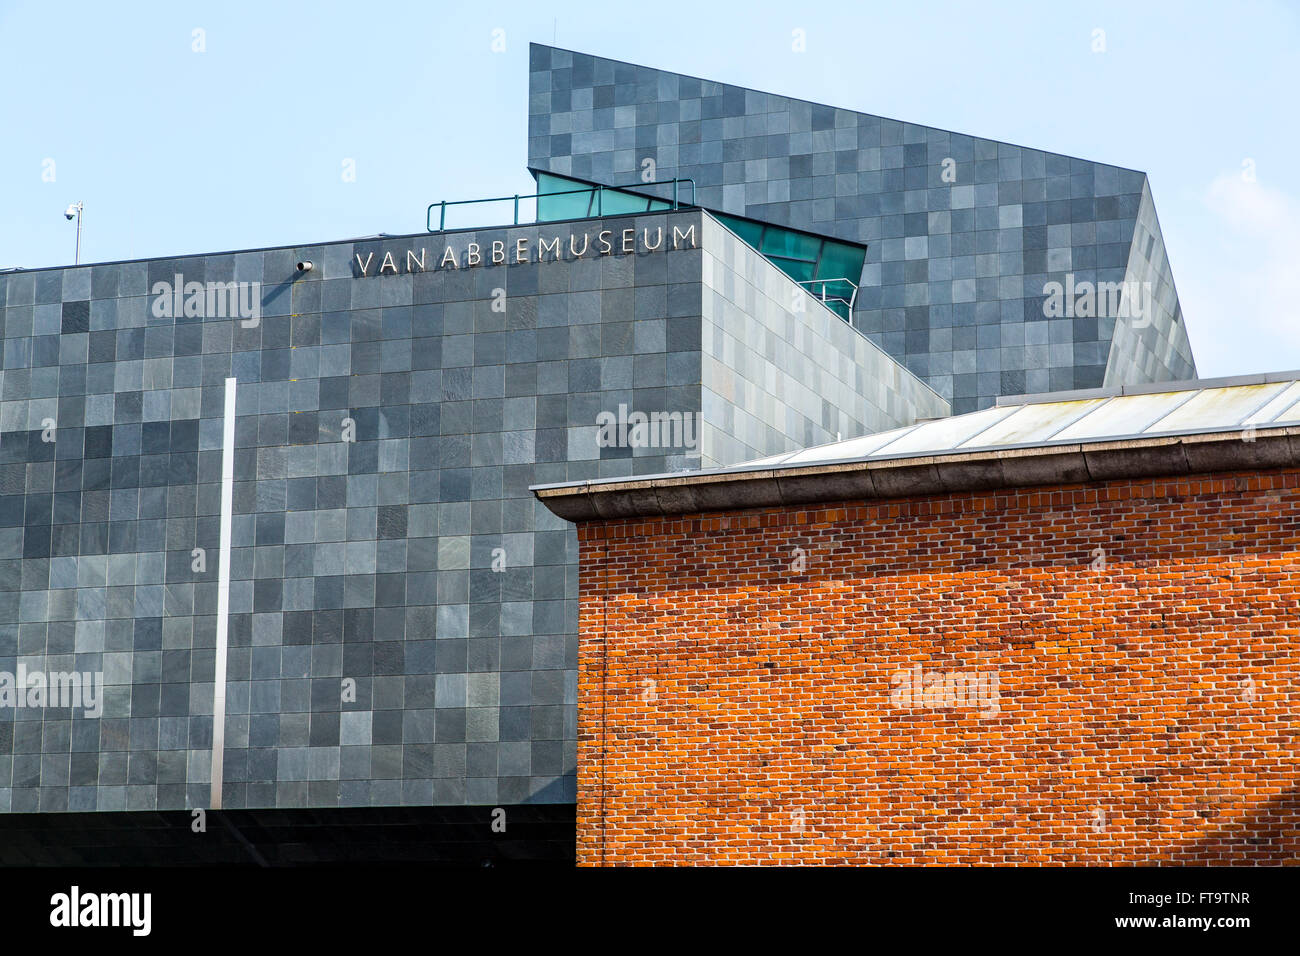 Art Museum, Van Abbemuseum, for modern and contemporary art, in Eindhoven, The Netherlands, Stock Photo